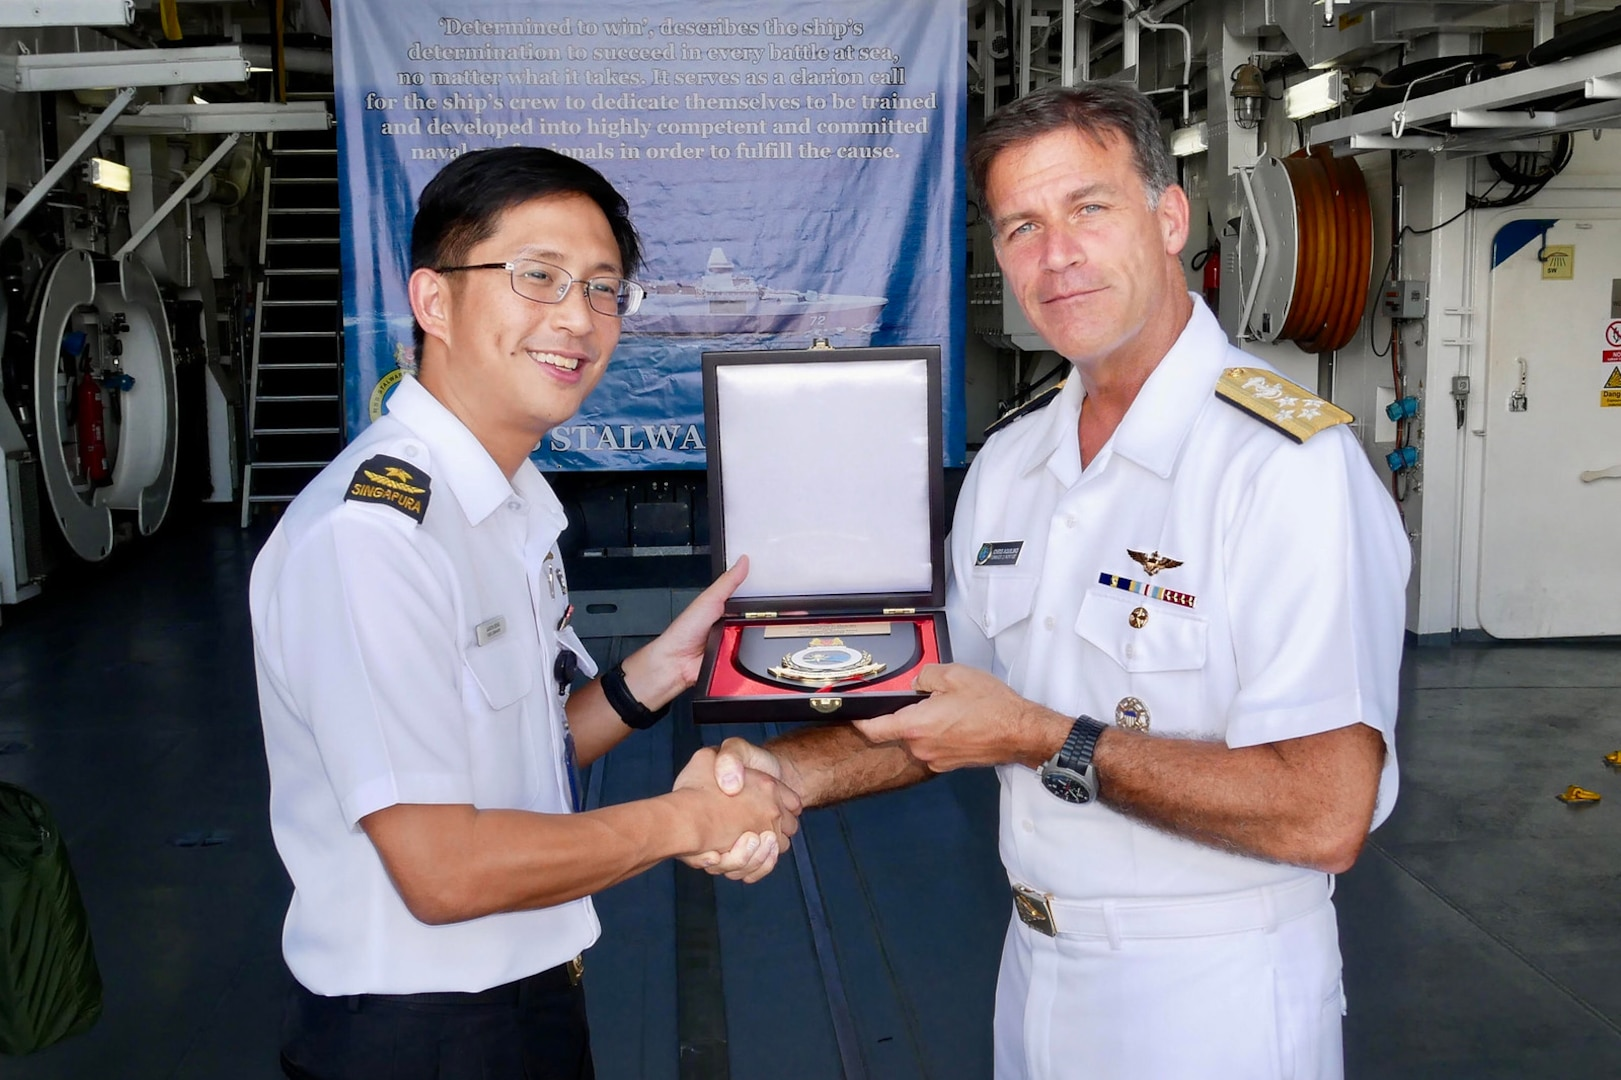 Pacific Fleet Commander Visits Singapore to Strengthen Partnerships